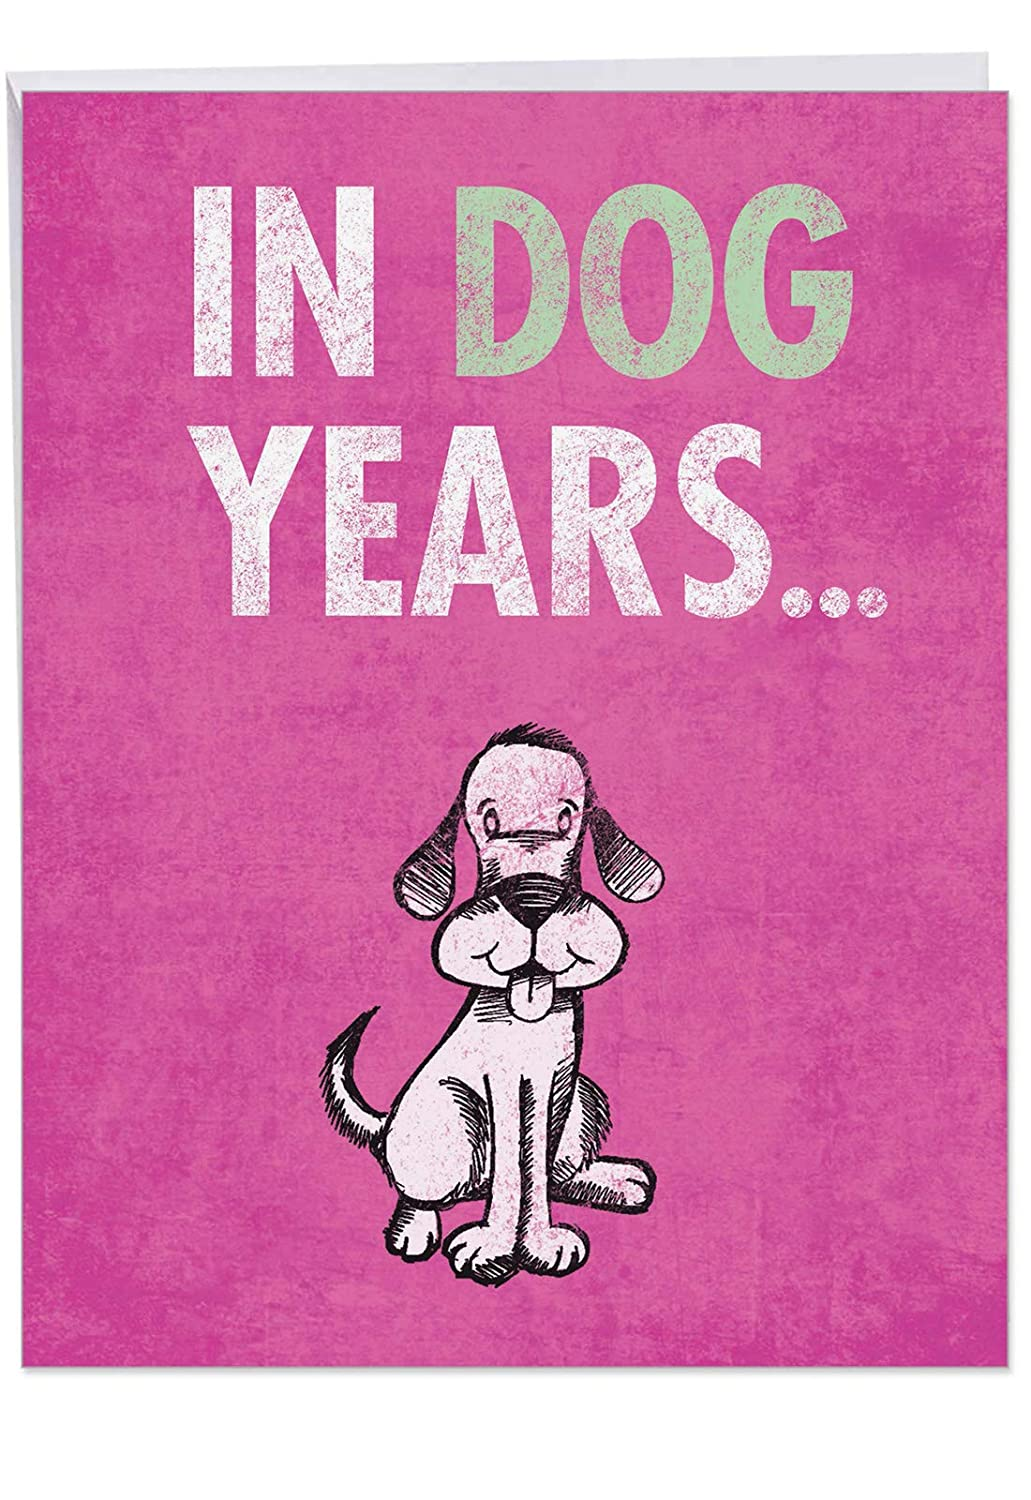 Funny Happy Birthday Greeting Card Large Dog Years With Envelope Big 85 X 11 Inch